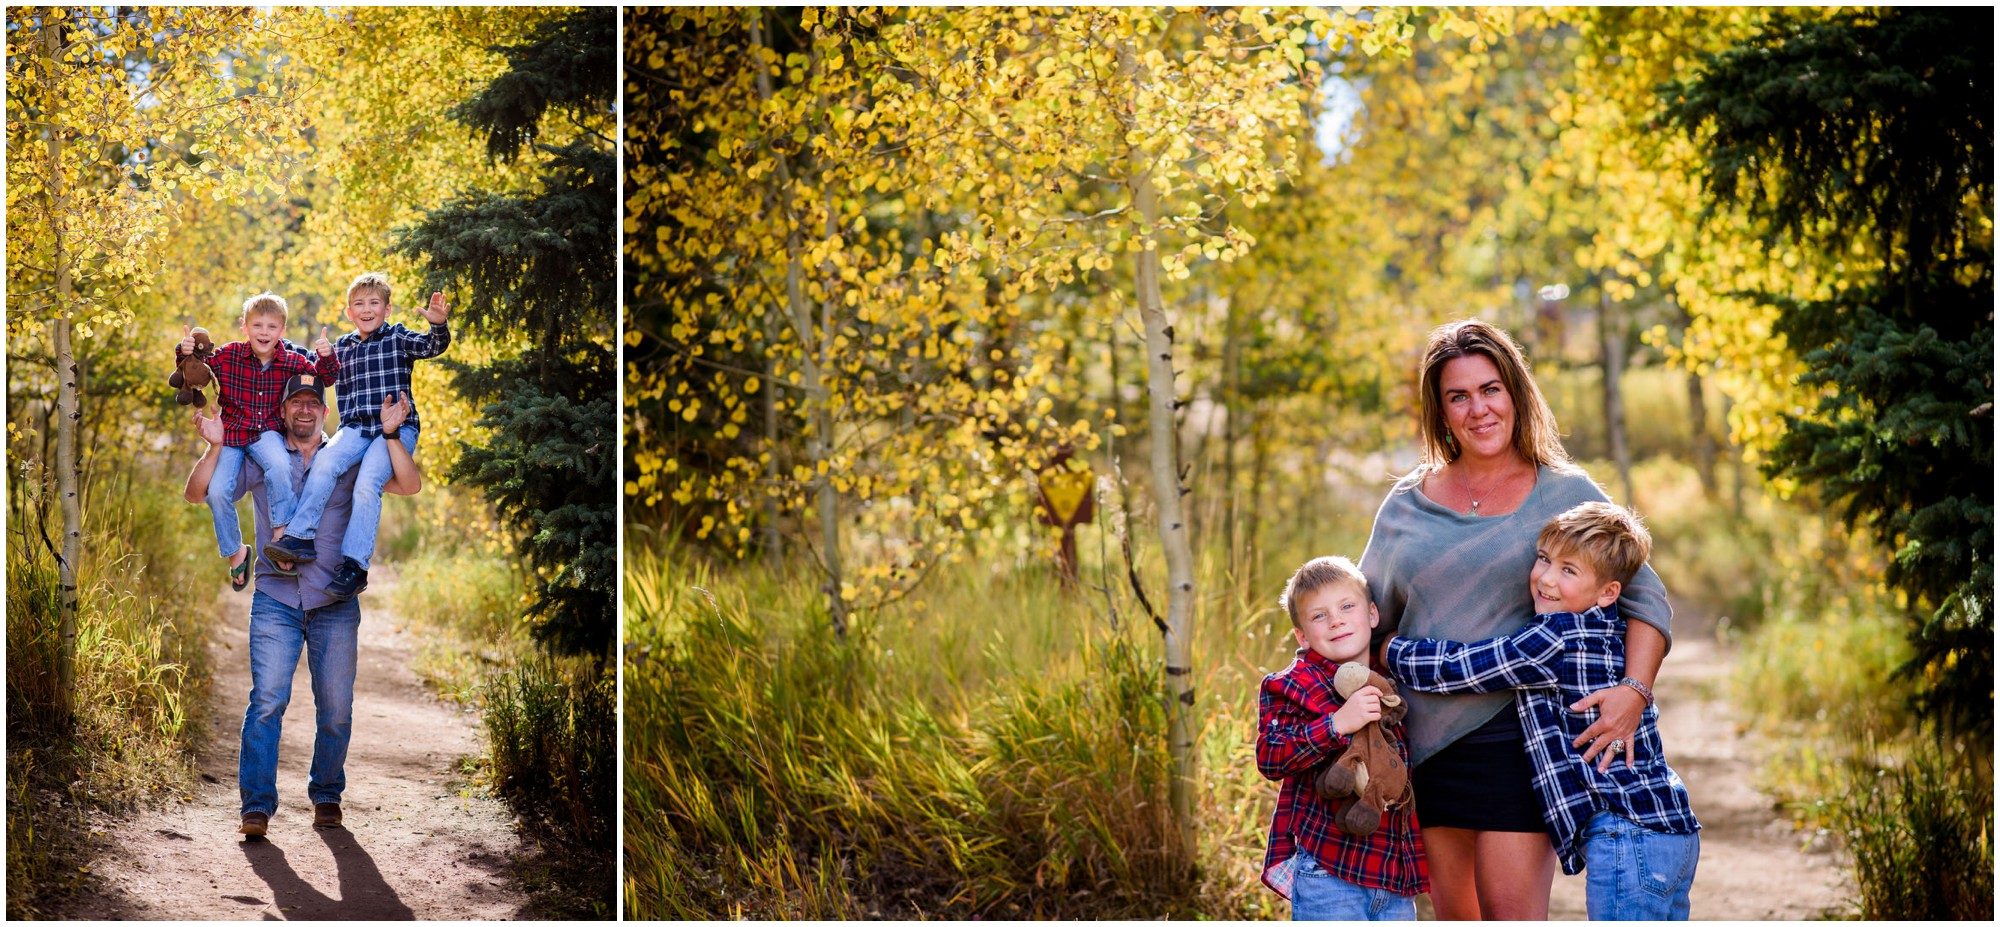 17-colorado-fall-meyer-ranch-family-photos-webster.jpg